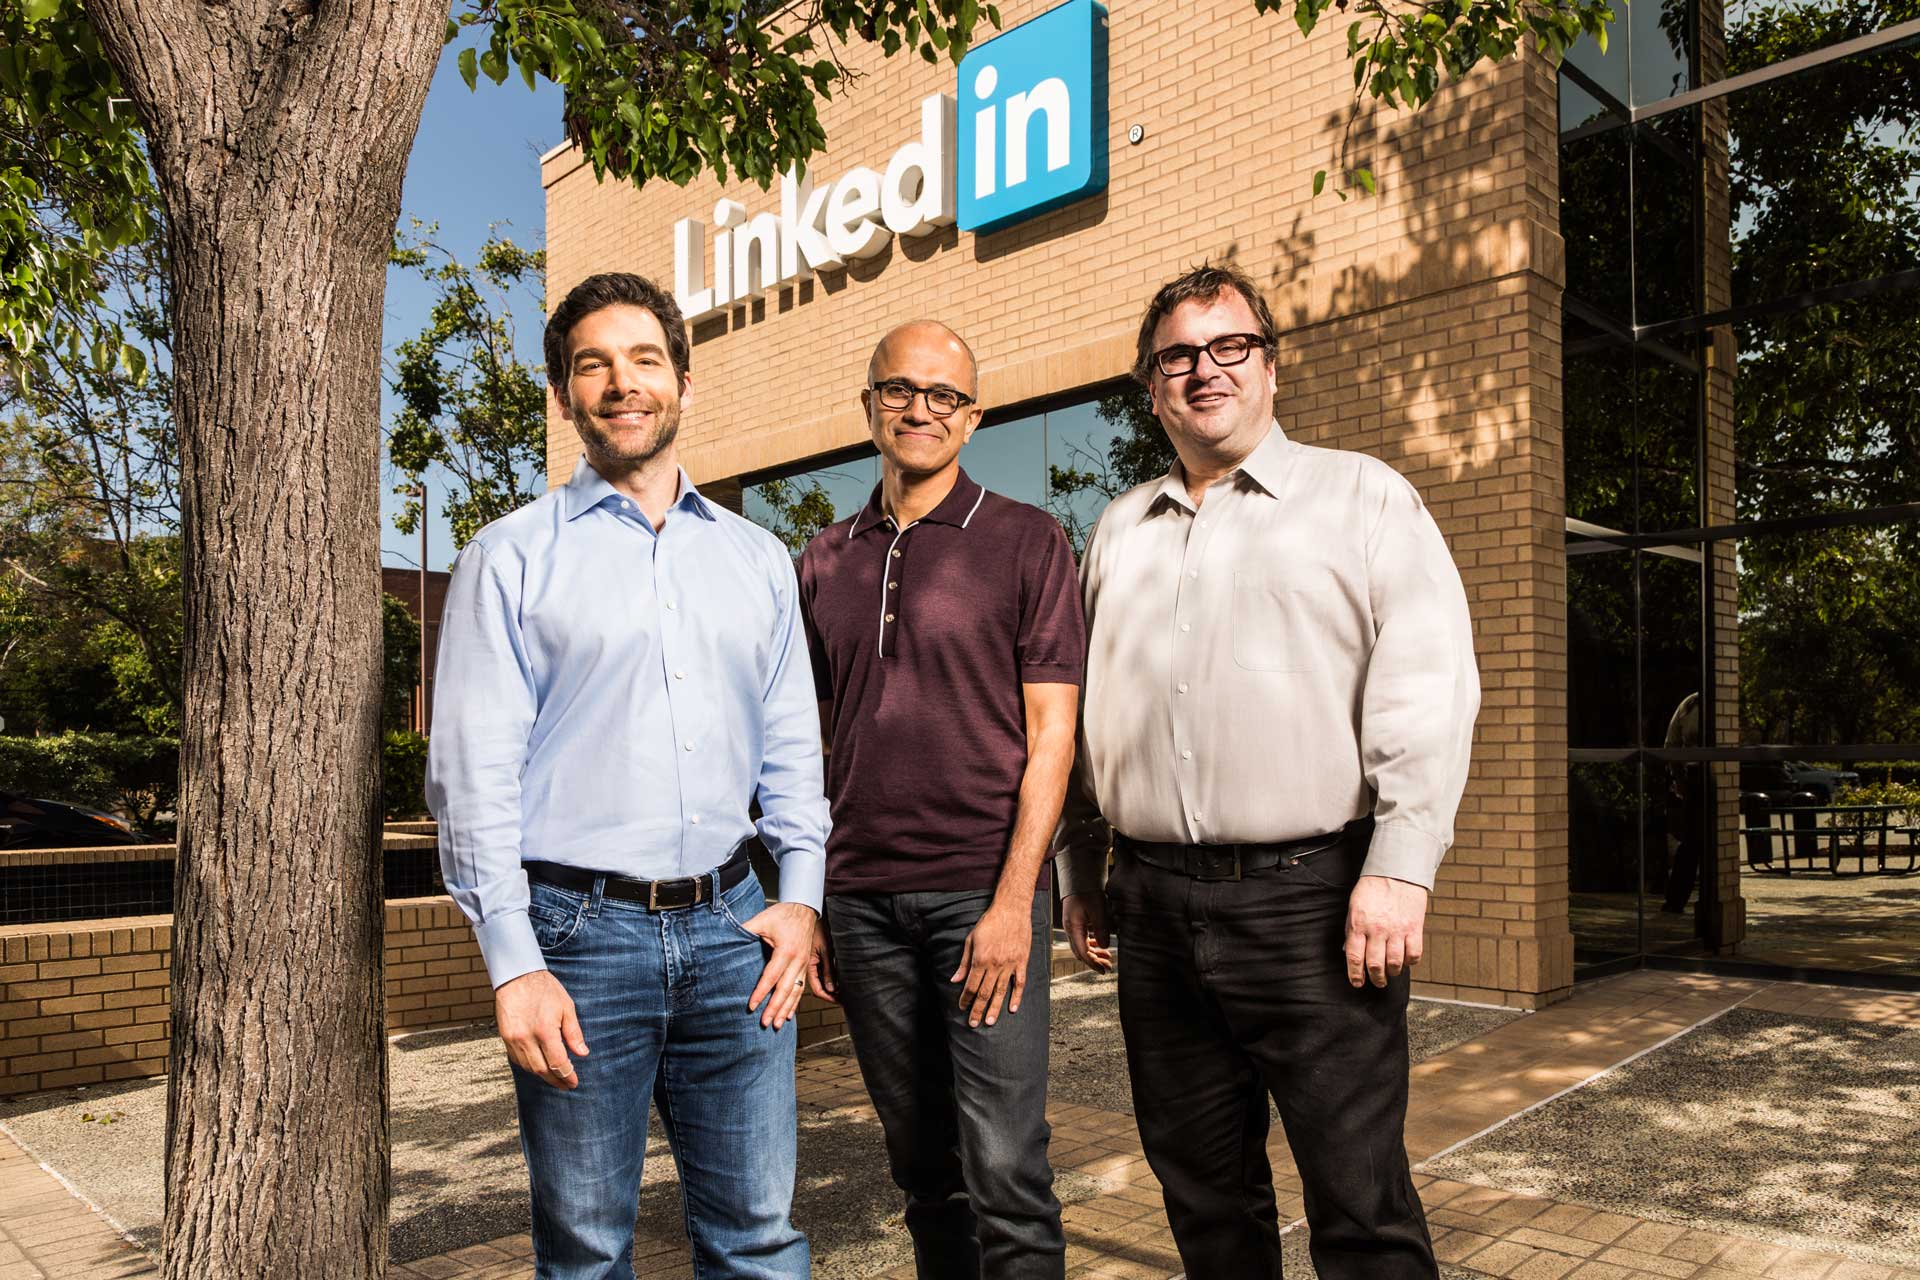 men standing in front of building with LinkedIn sign